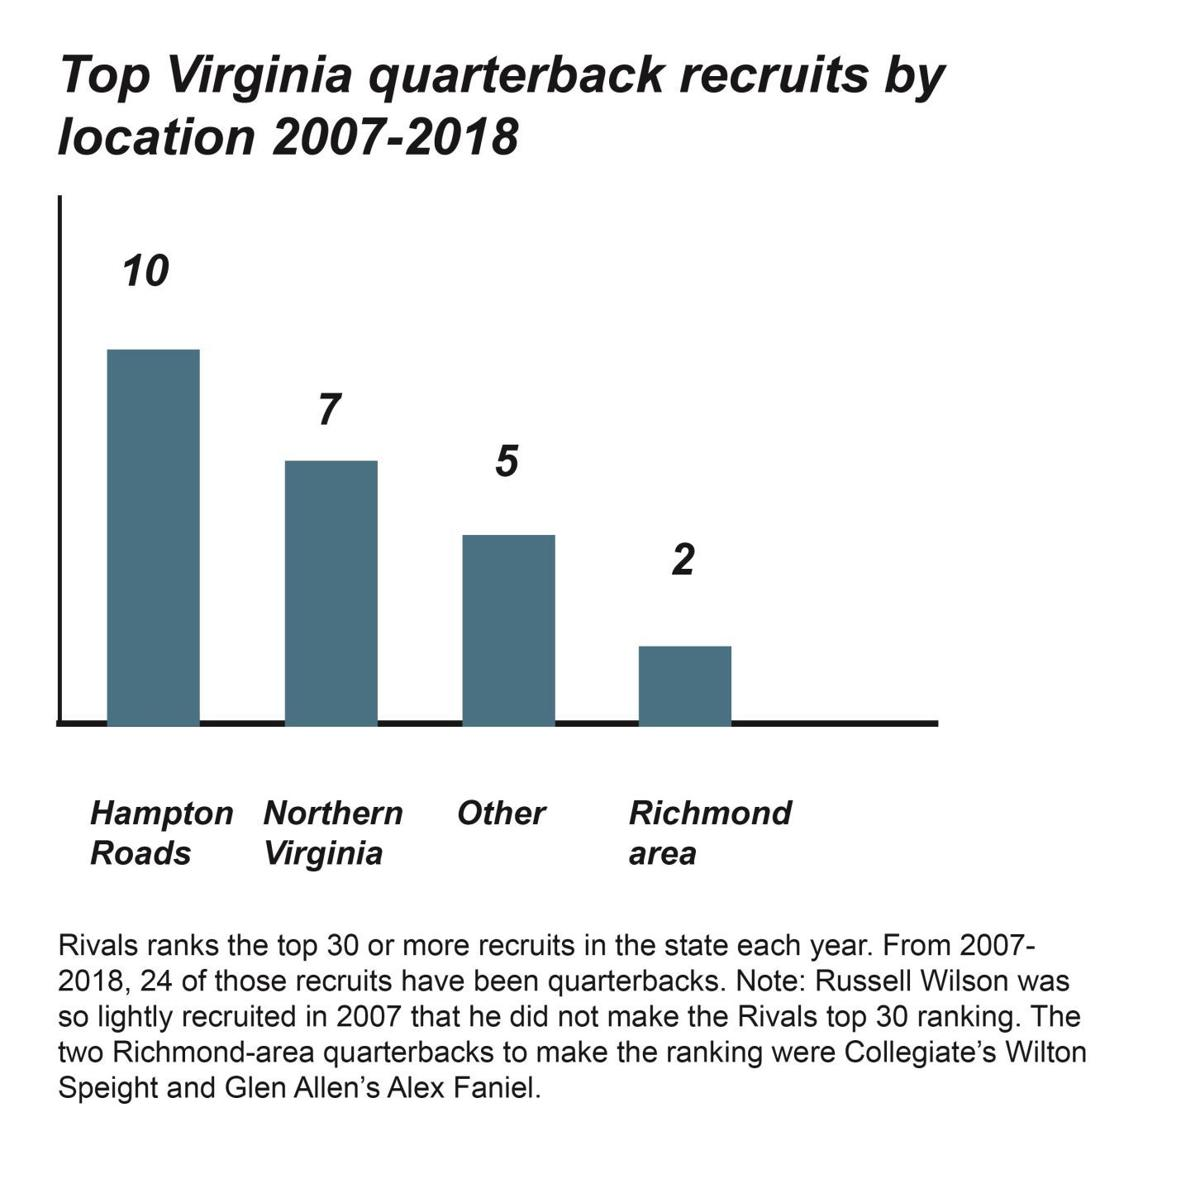 The Richmond area is producing high-level quarterback